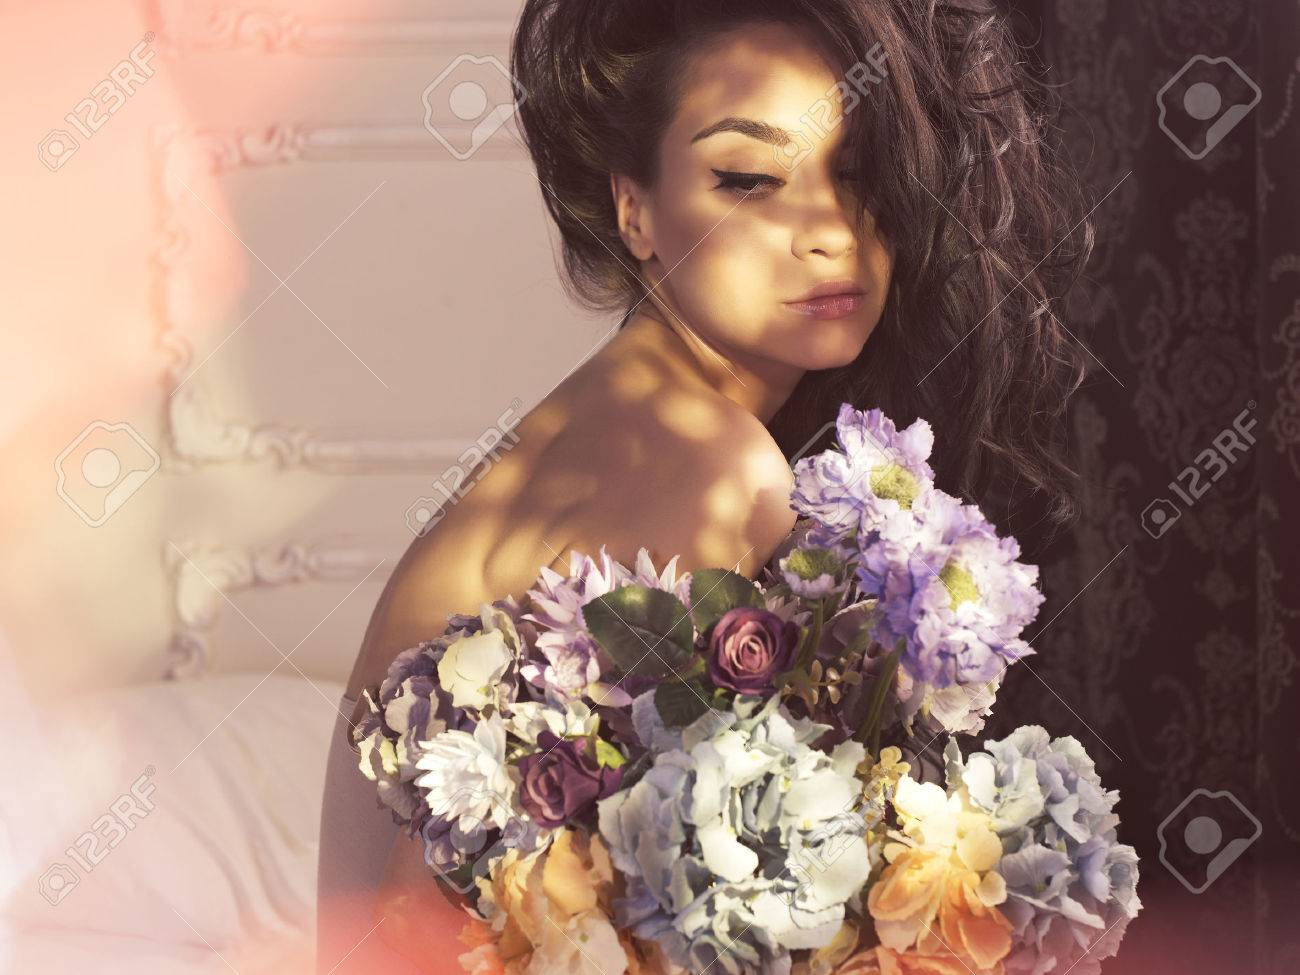 Fashion art photo of beautiful lady with flowers home interior fashion art photo of beautiful lady with flowers home interior morning stock photo dhlflorist Gallery